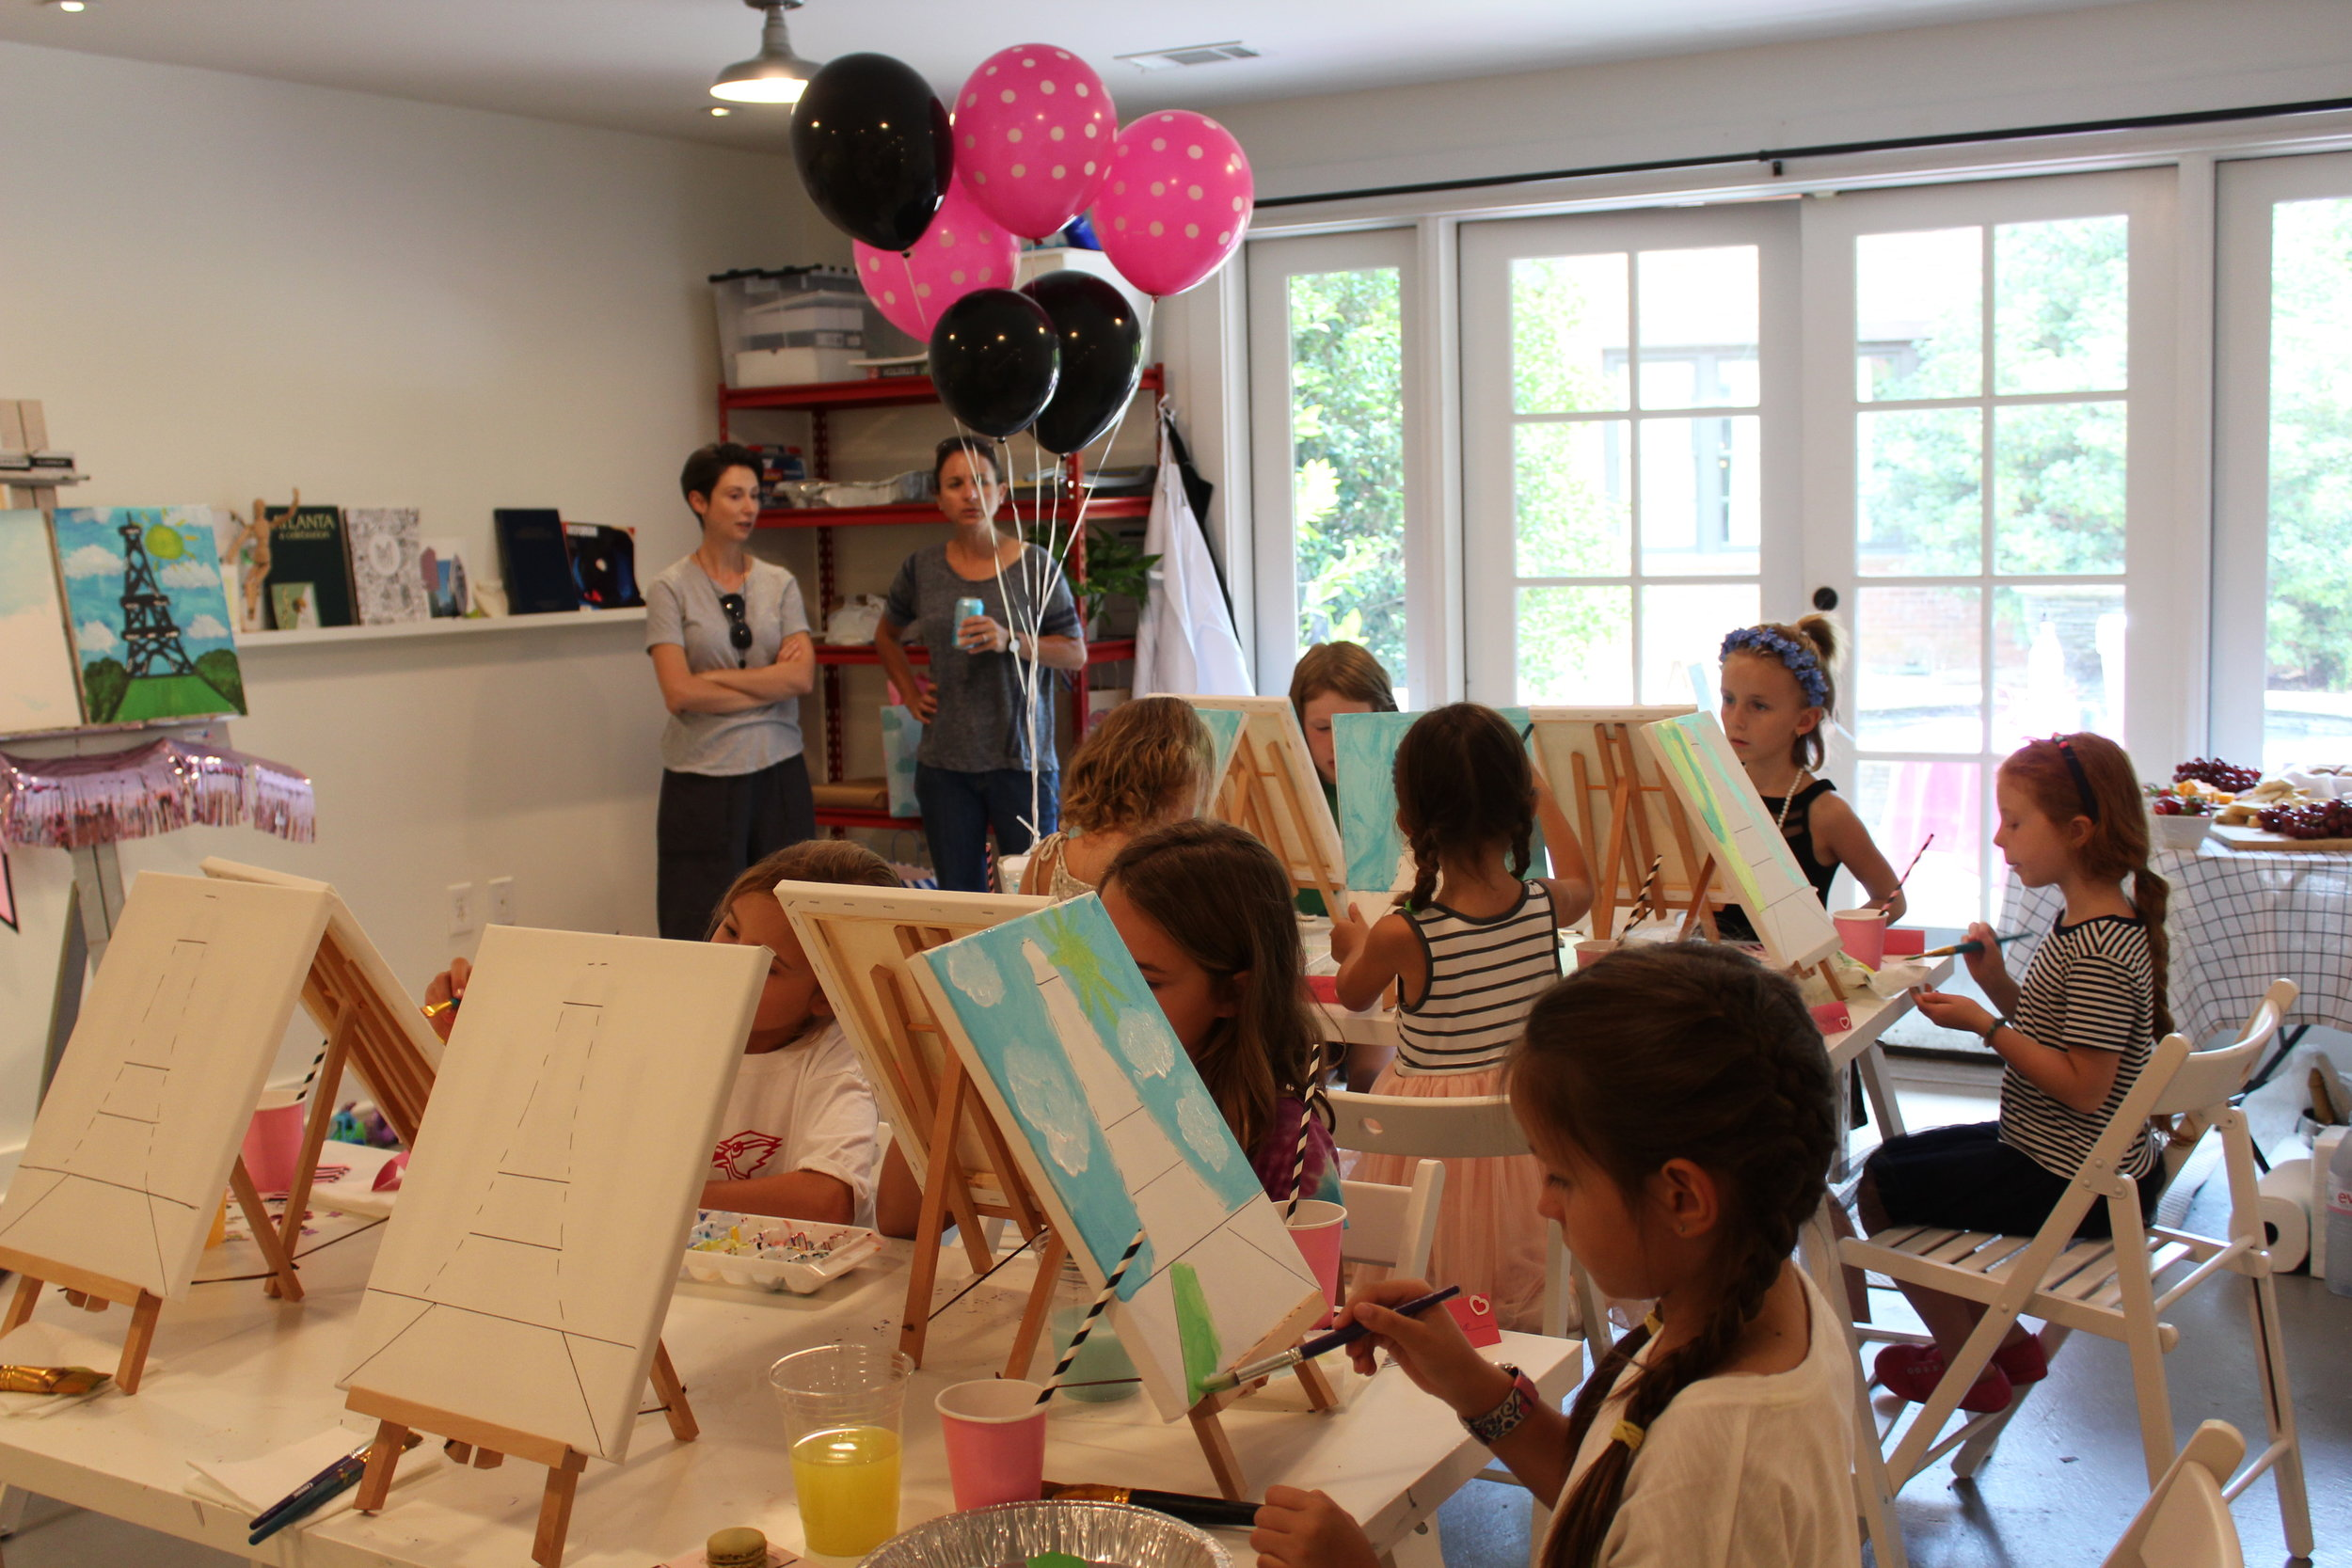 A fun French themed painting birthday.